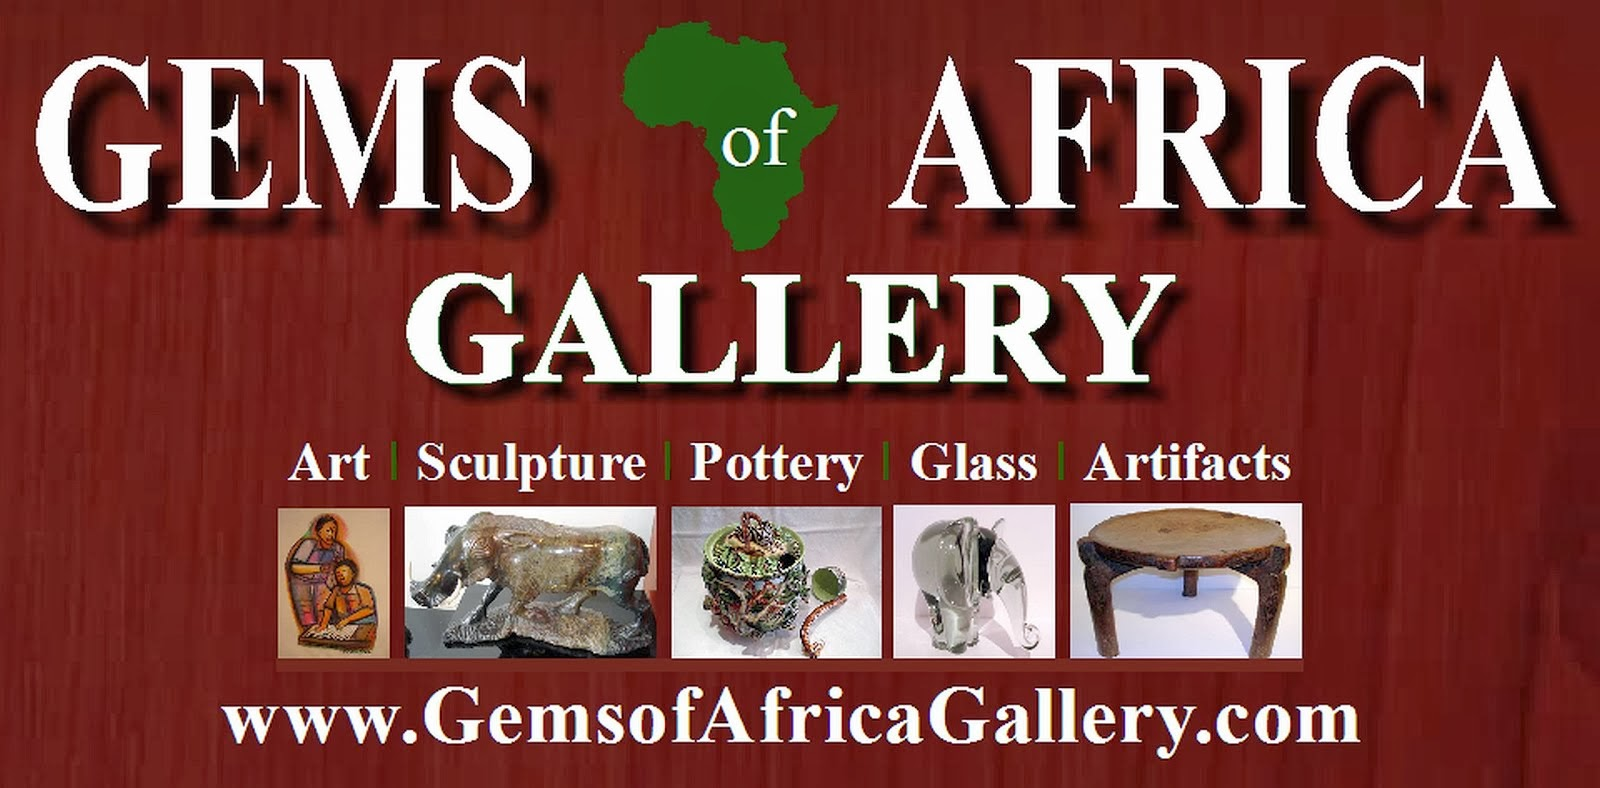 Gems of Africa Gallery